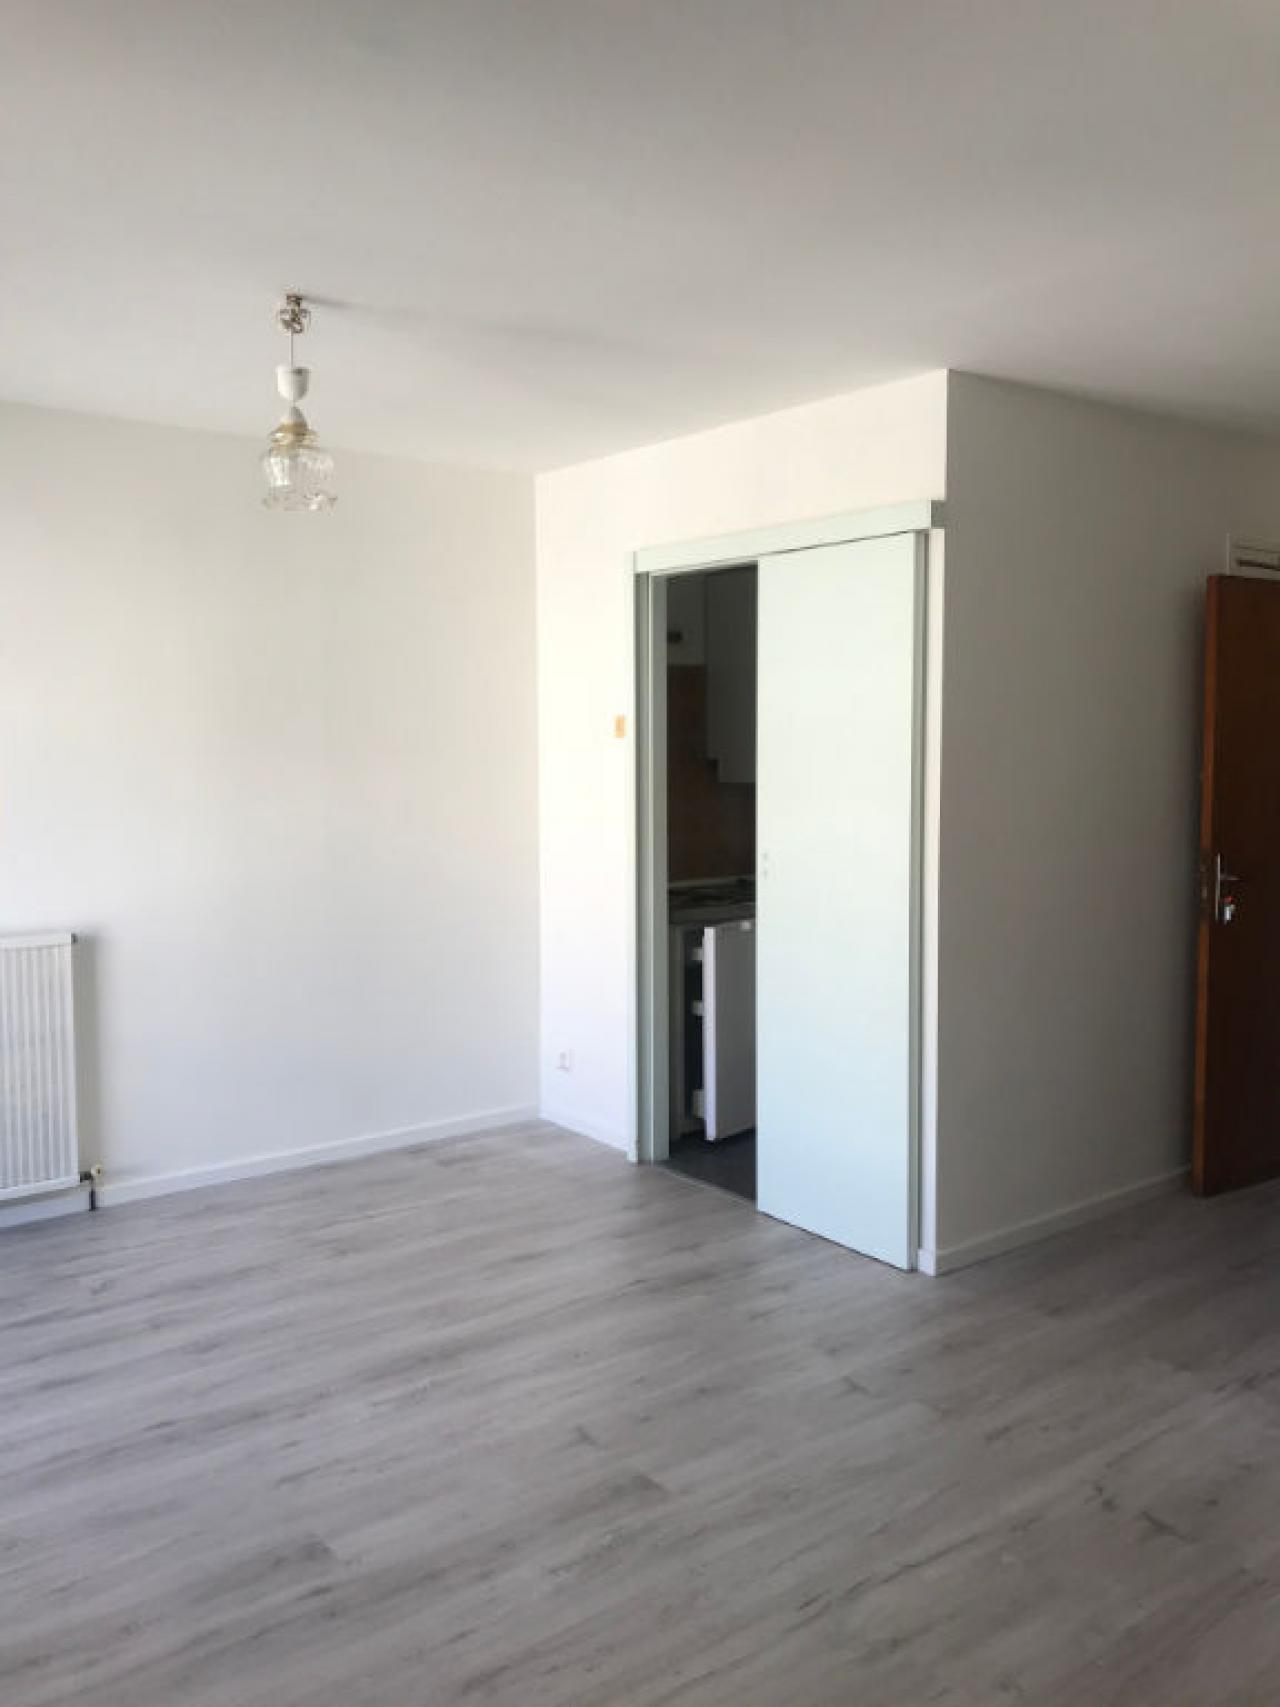 Apartment CARCASSONNE | 280 € / month